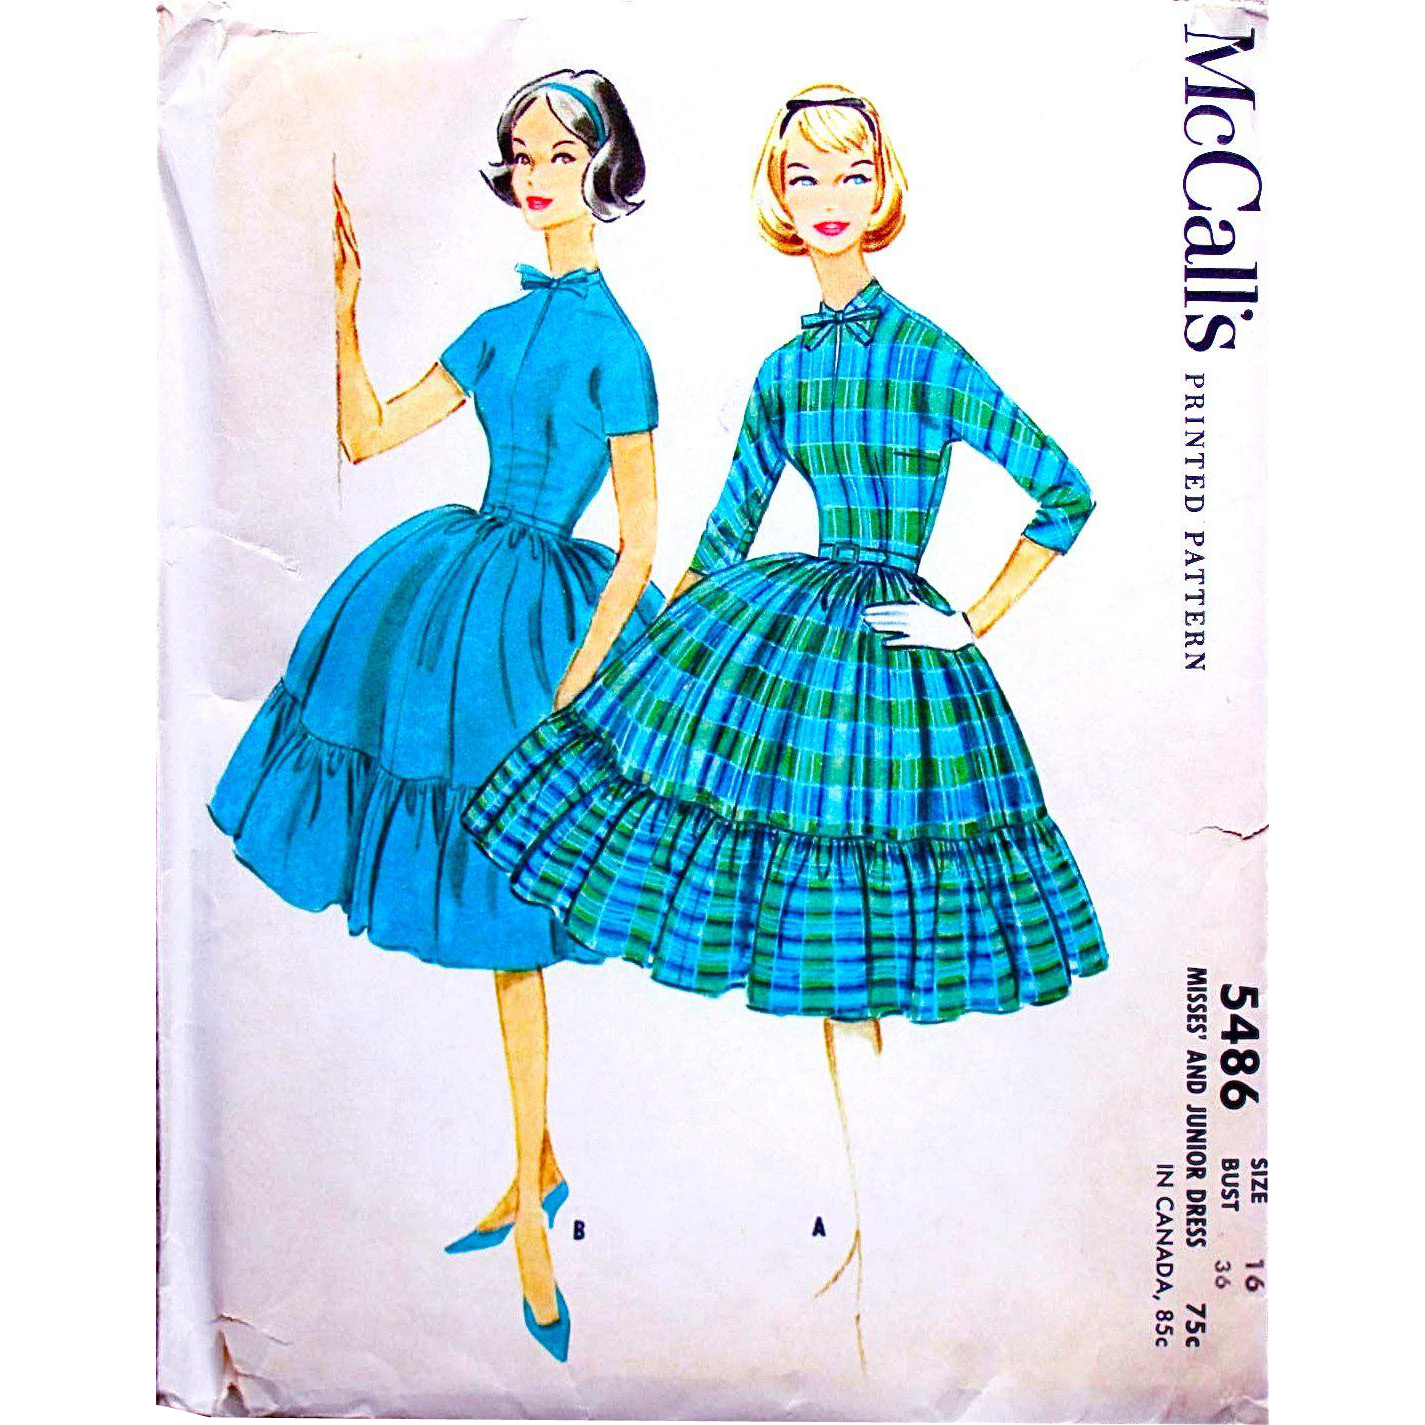 McCall's 5486, Misses' Dress with Full Flounced Skirt, Uncut, Factory Folded Sewing Pattern, Size 14, Bust 36, Vintage 1960